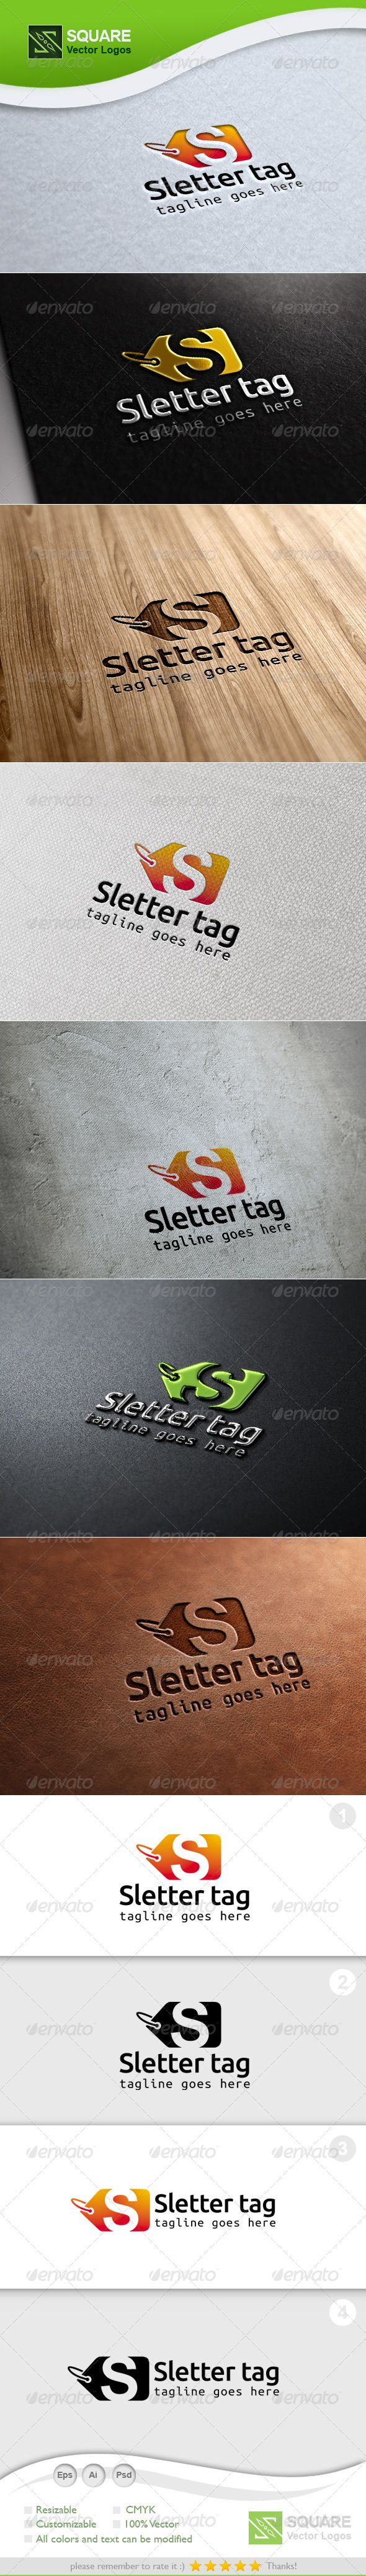 S, Tag Vector Logo Template — Photoshop PSD #design #badges • Available here → https://graphicriver.net/item/s-tag-vector-logo-template/6789567?ref=pxcr